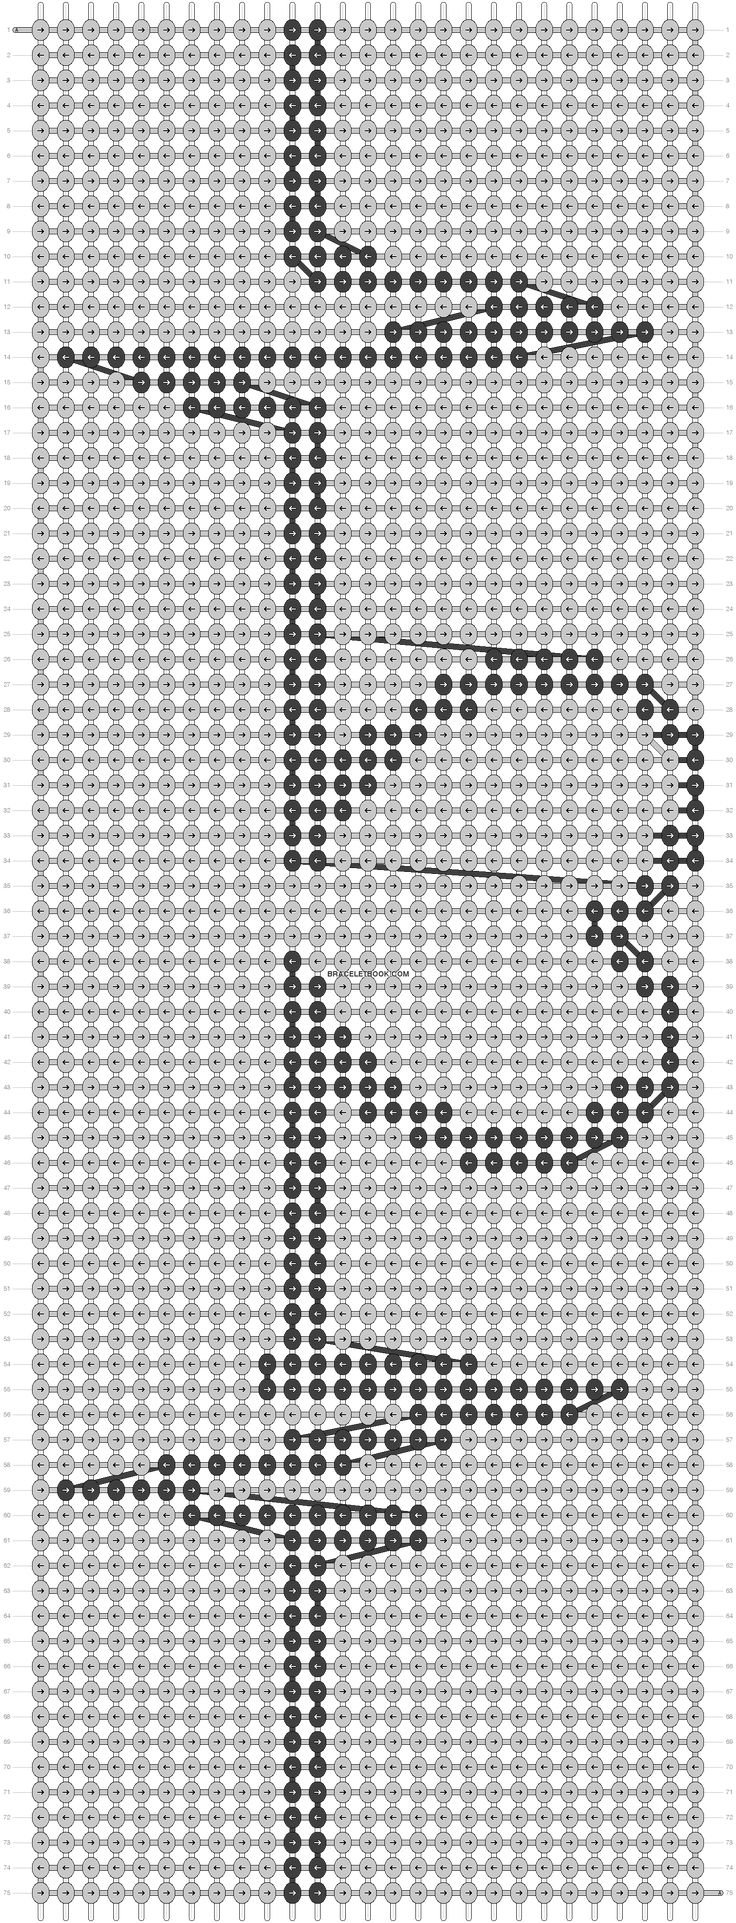 Love heart beat friendship bracelet pattern number 2231 - Fore more patterns and tutorials visit our web or the app!